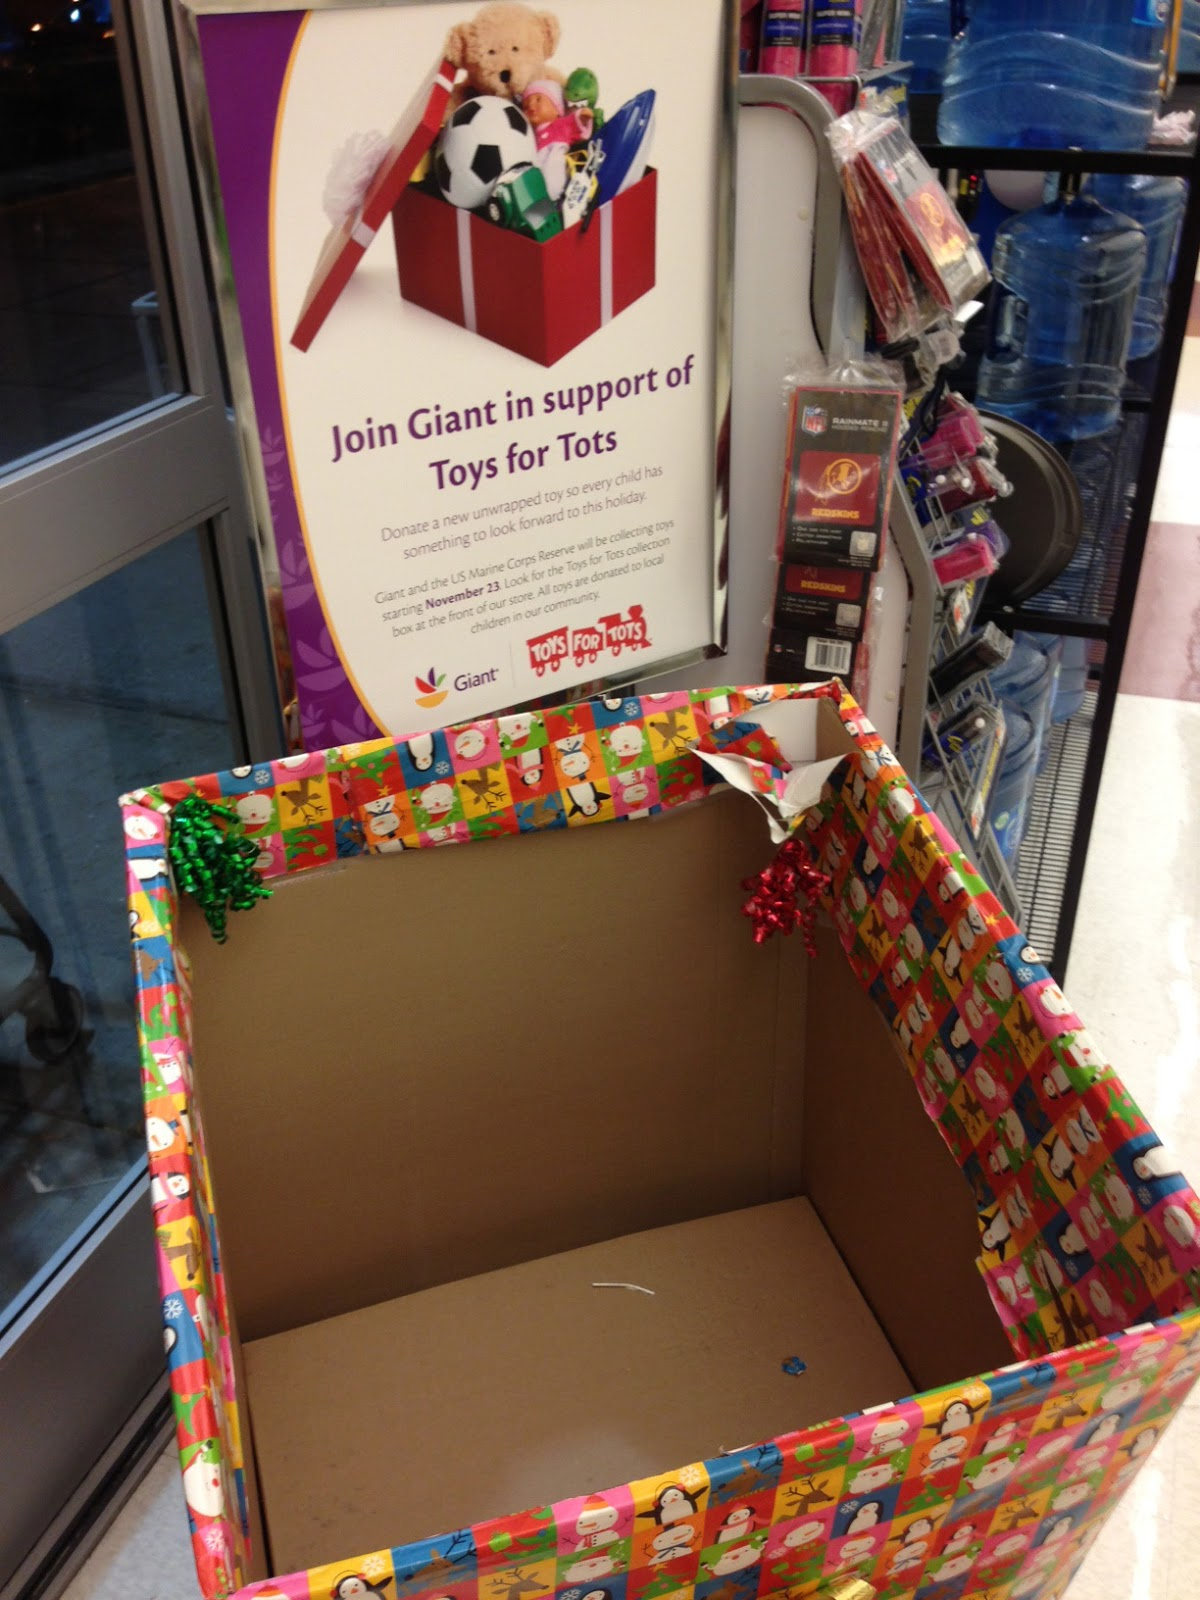 Toys For Tots Is Underway At Giant But Their Box Empty Let S Help